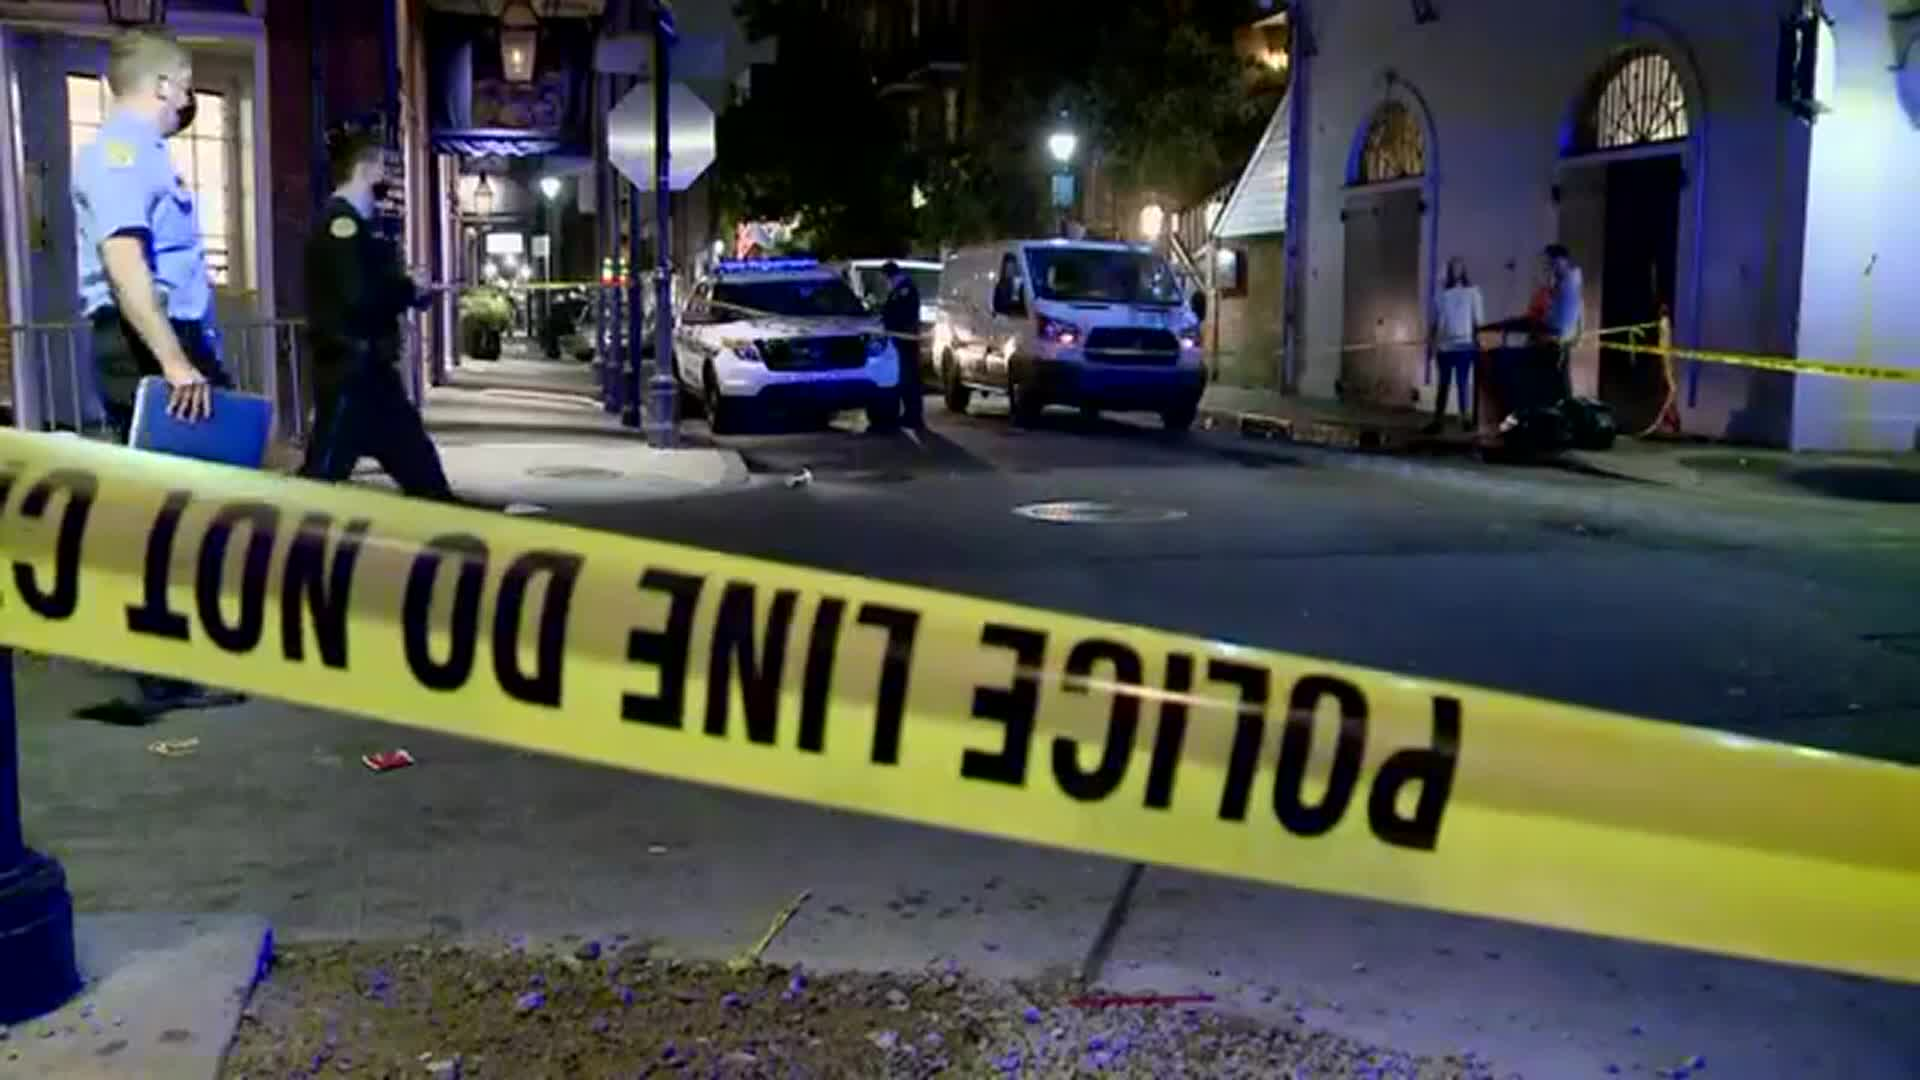 Five People Injured in Shooting on New Orlean's Bourbon Street